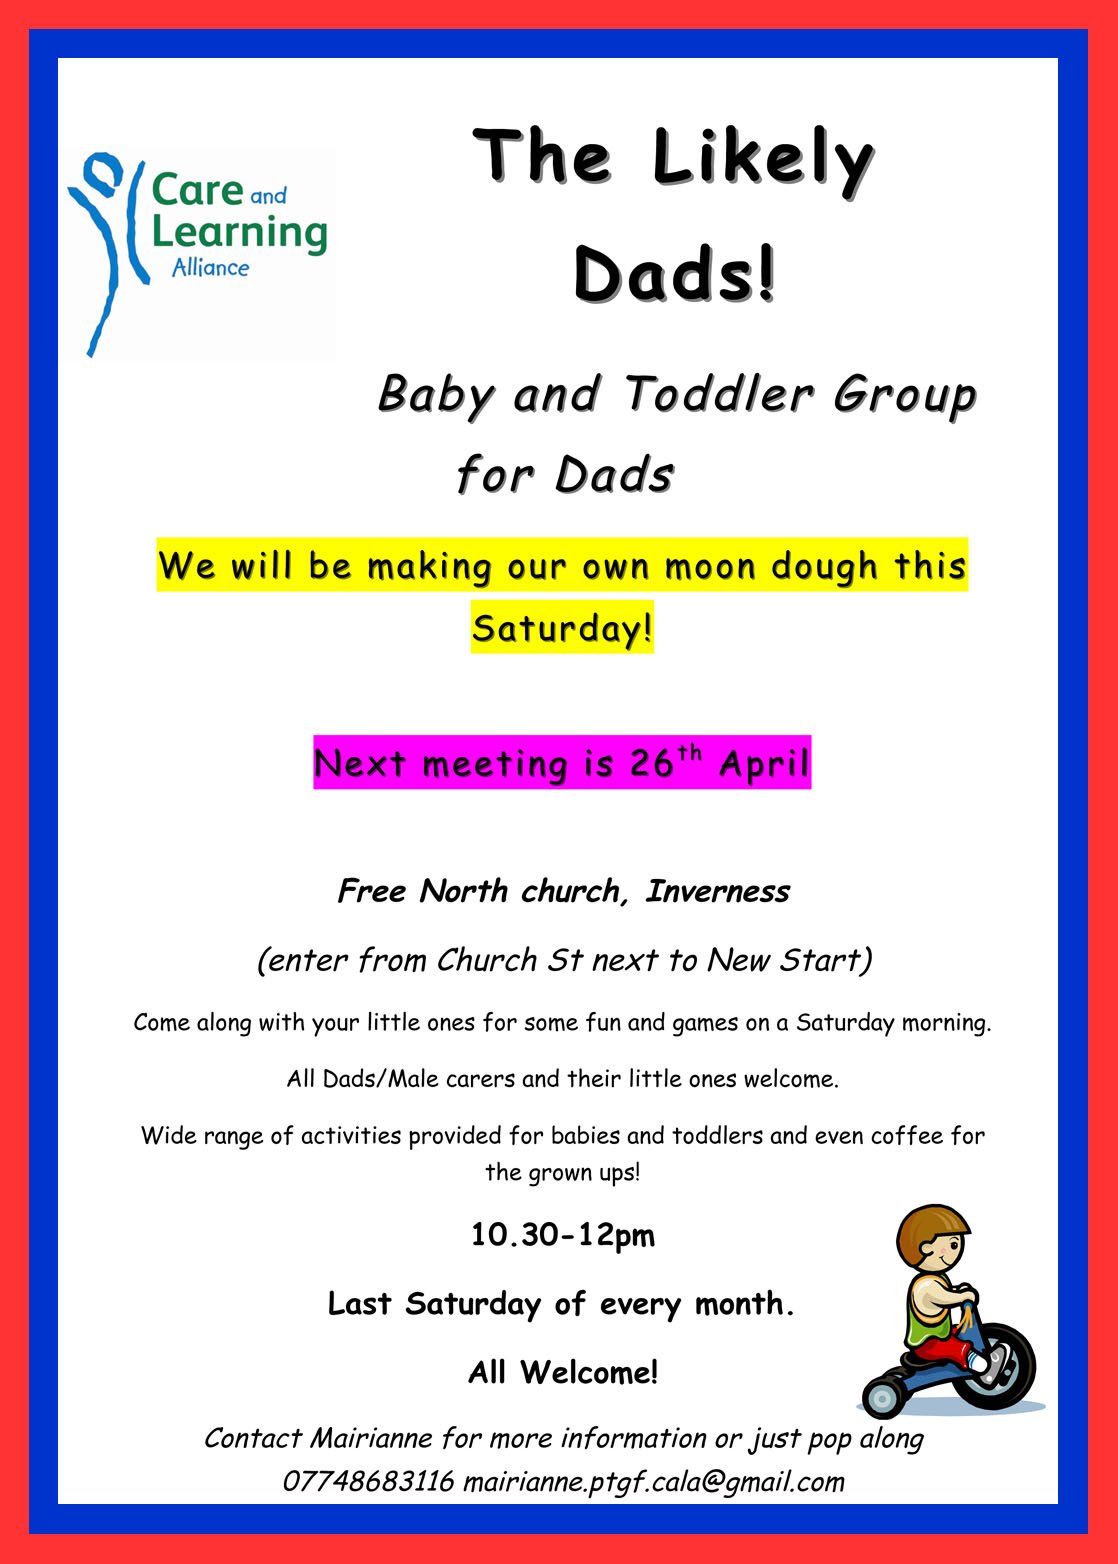 moon dough   the likely dads   fun this saturday in inverness